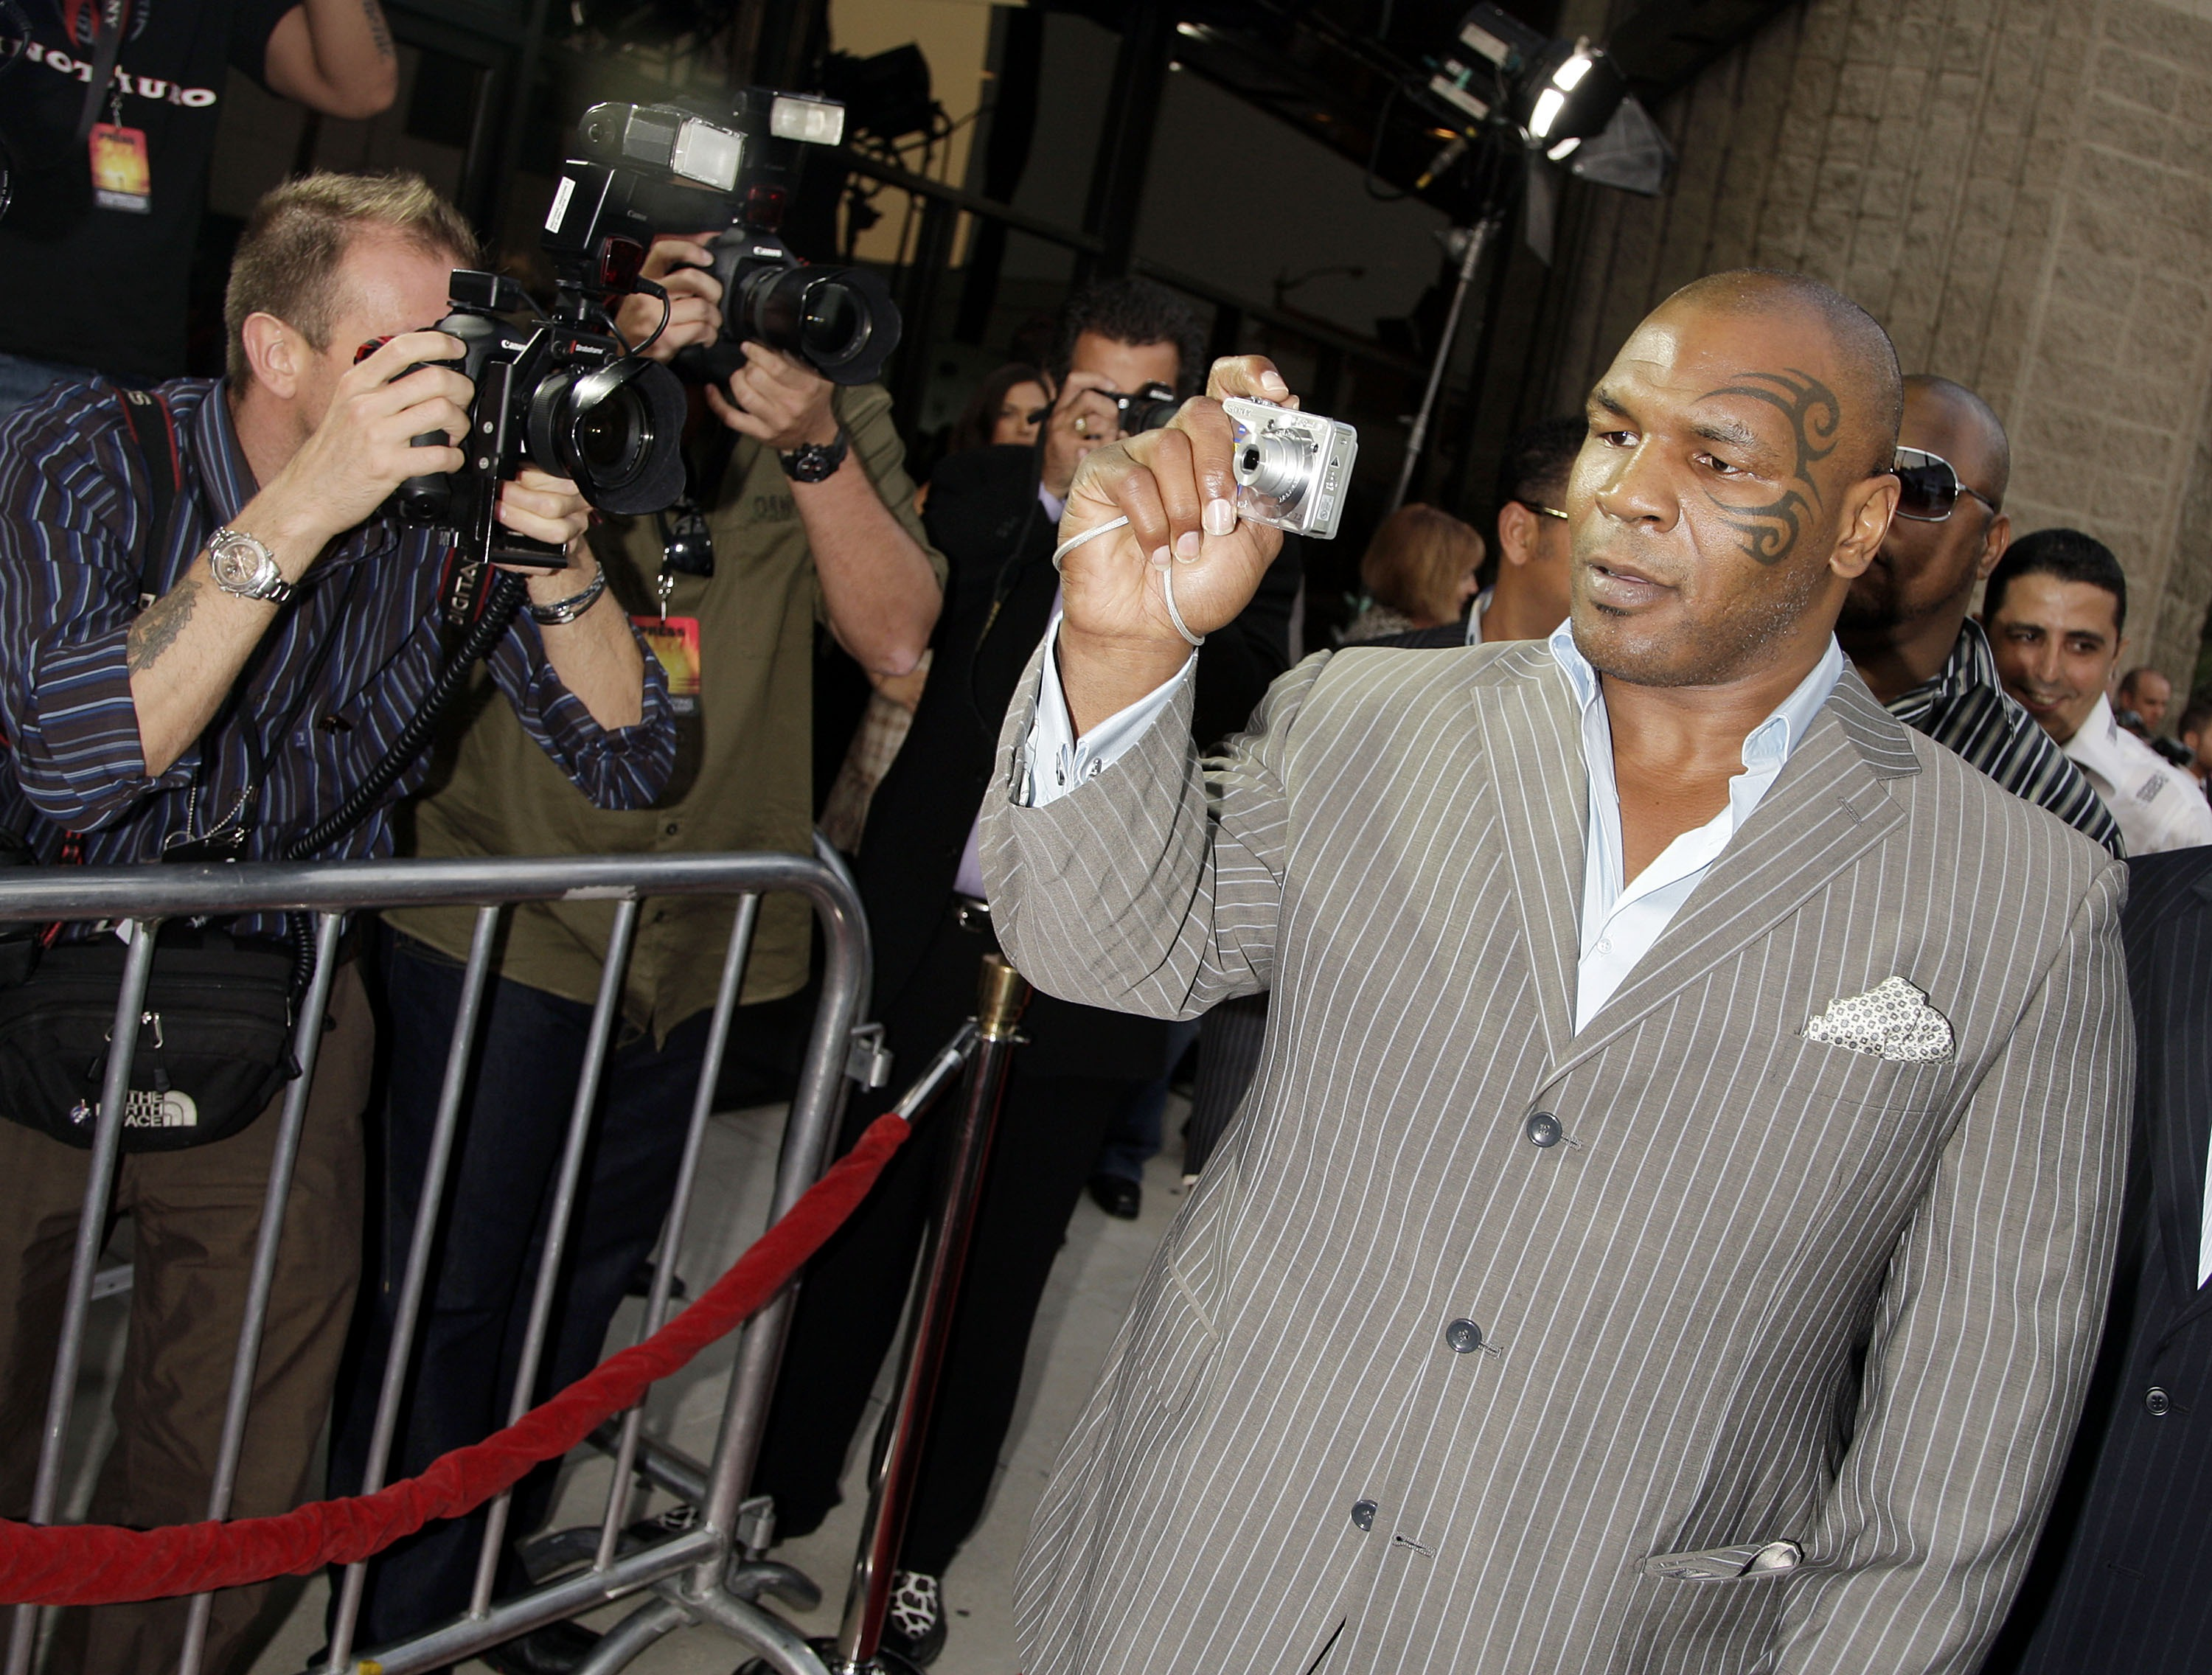 Mike Tyson On Being Labeled 'Iron Mike': 'That Guy's Dead'